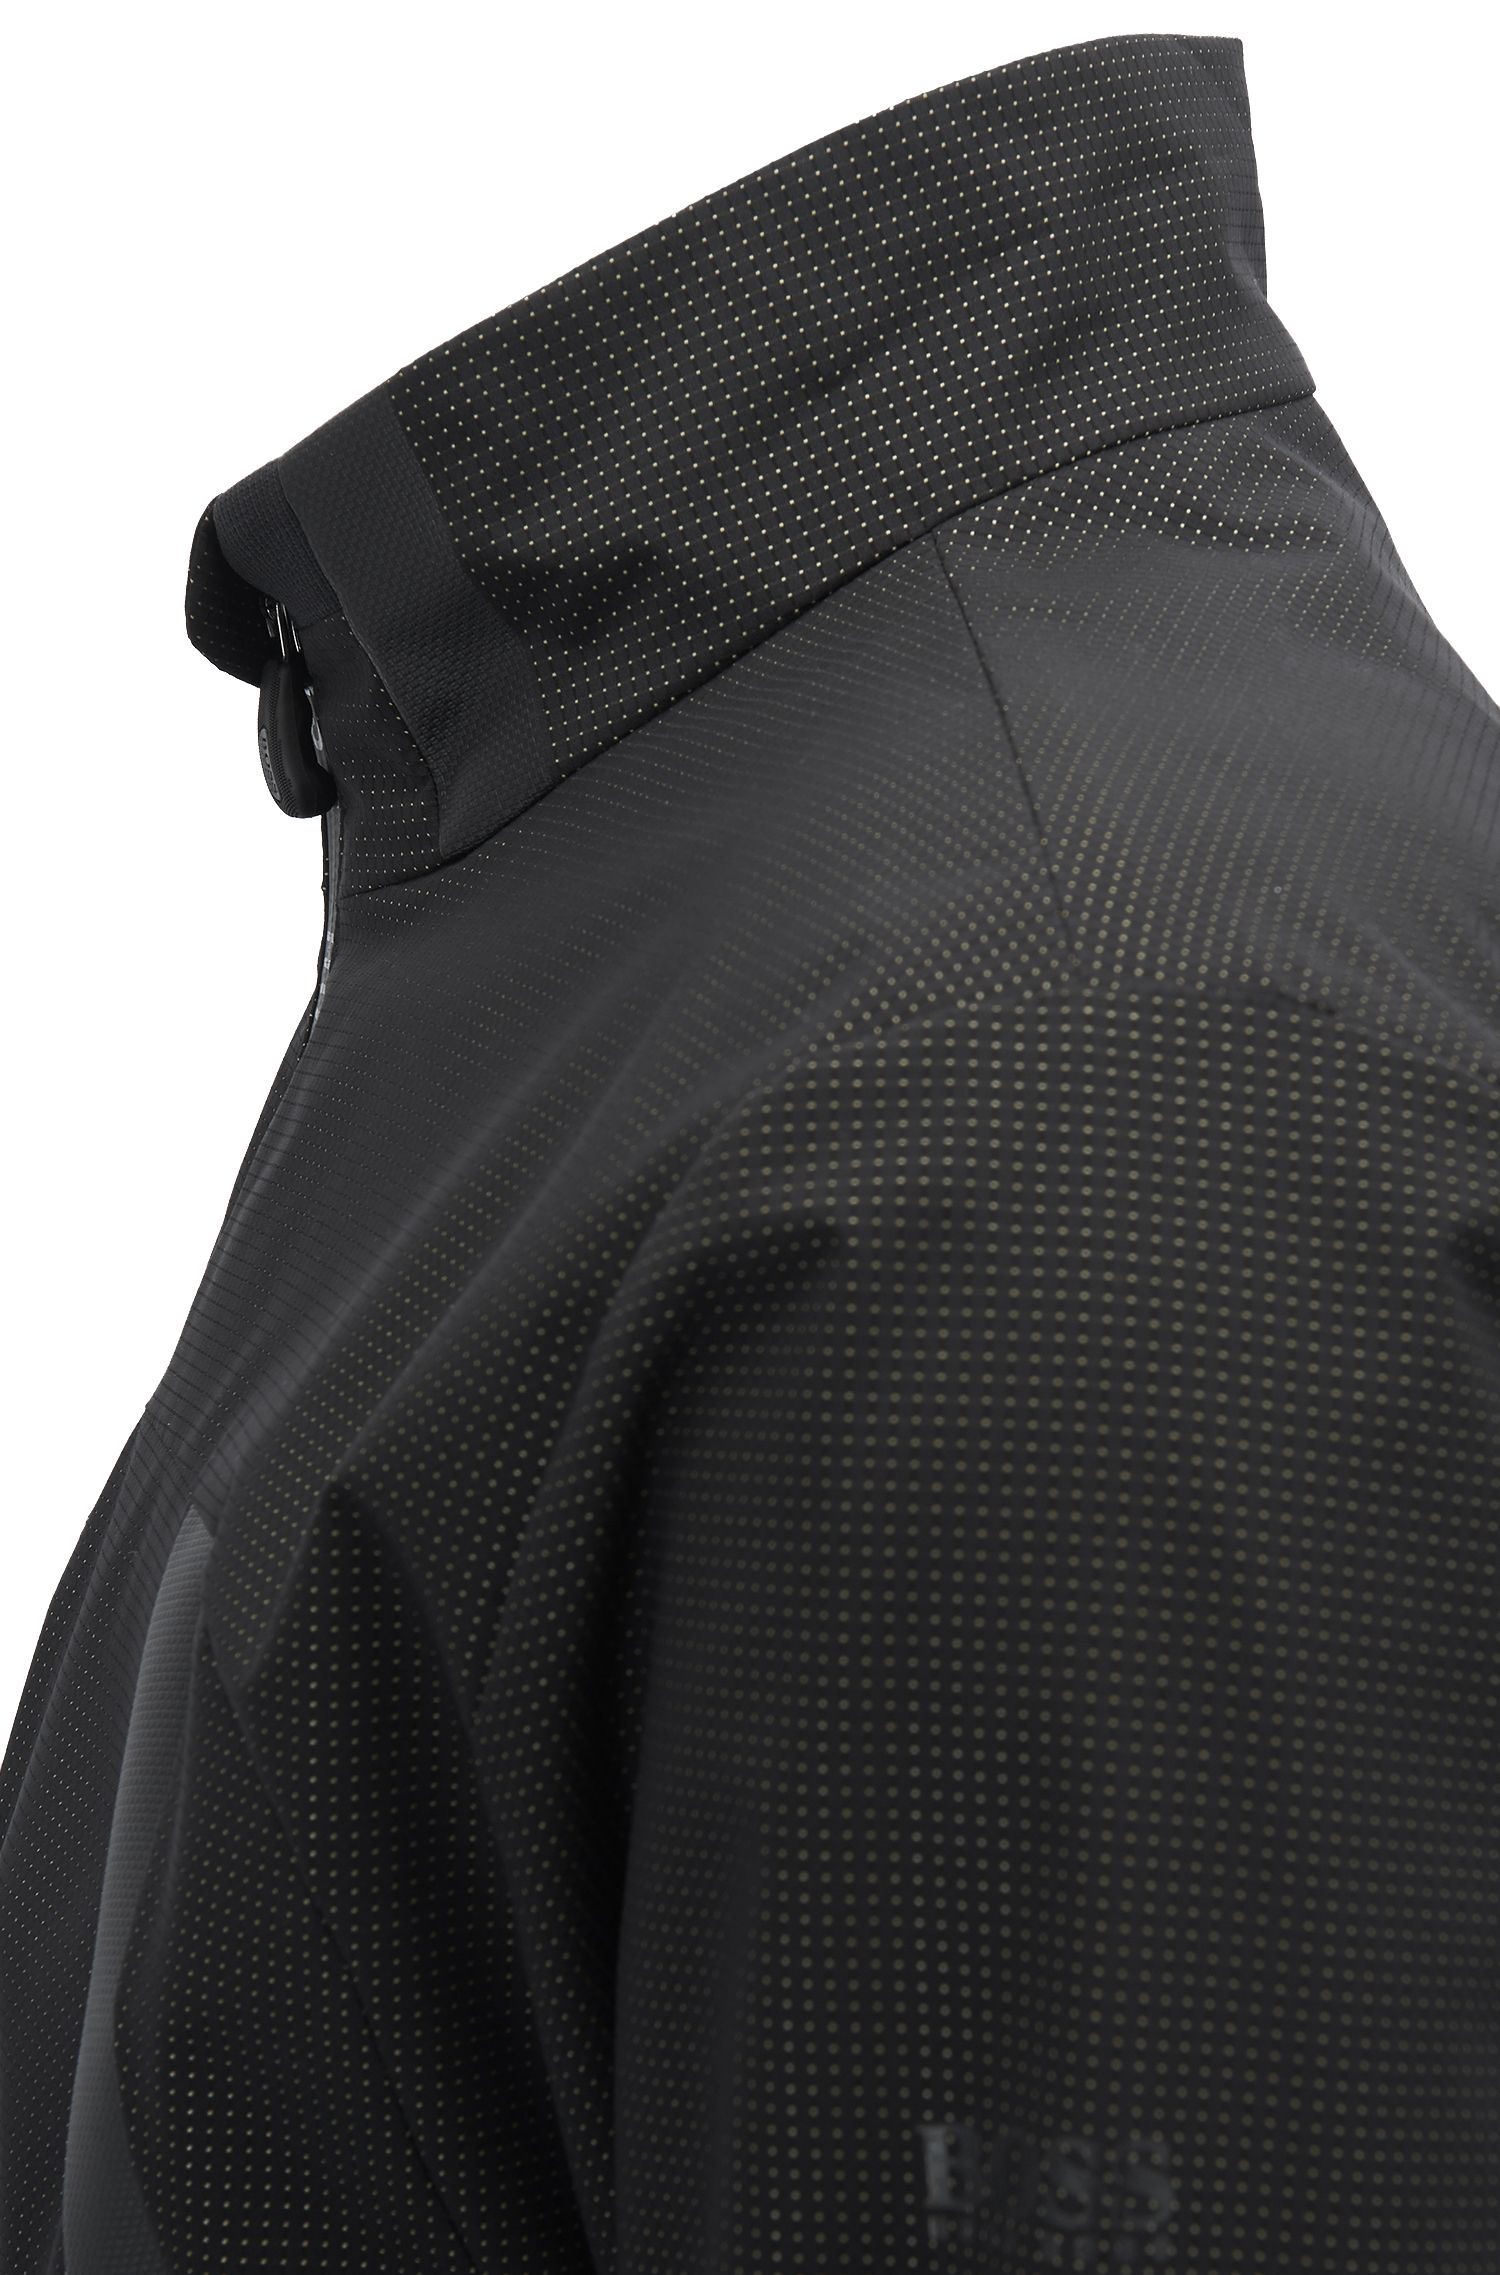 Water-Repellent Micro-Dot Jacket | Jomber Pro, Black